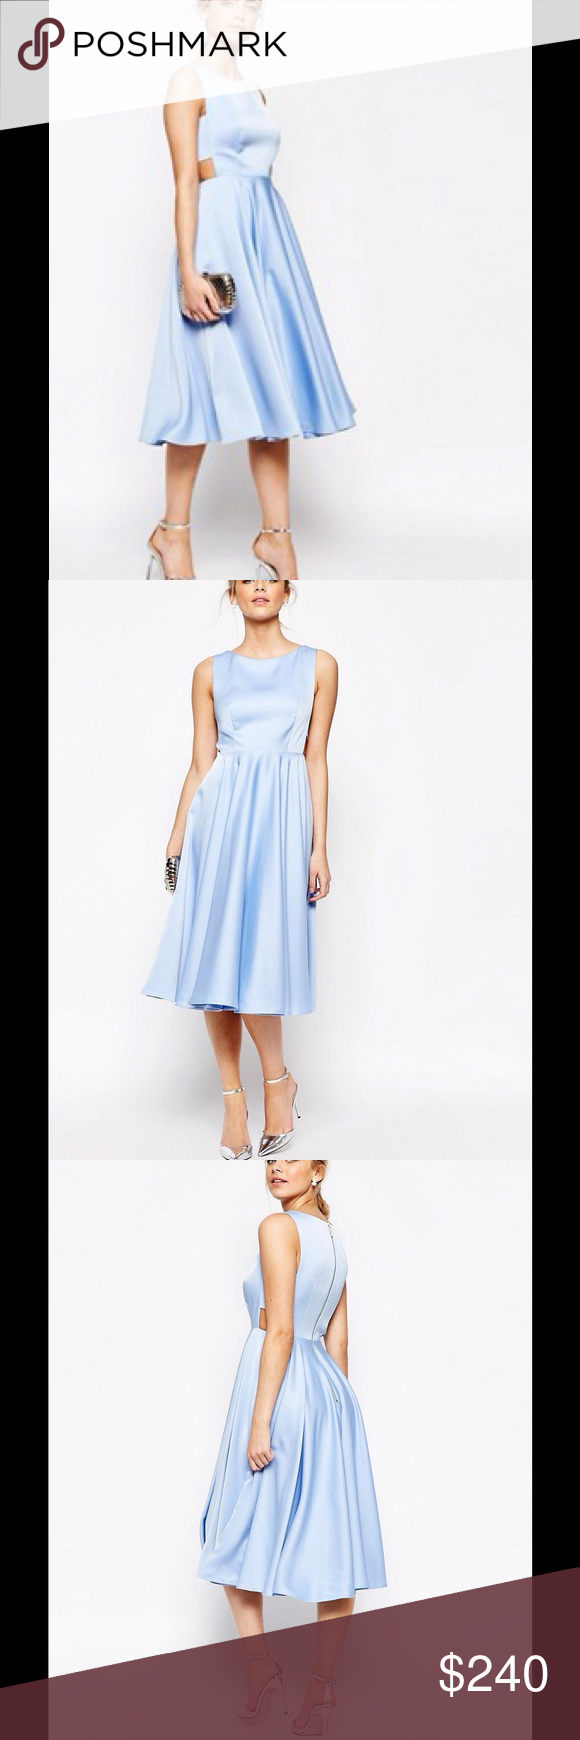 """Luca Cut Out Midi Full Skirt Dress Ted Baker Dresses Powder Blue  Details: Ted Baker womenswear collection Cut-out detail Fit and flare Midi length Sleeveless Exposed zip at back Our model is 5'9.5"""" and wears a size 1 Care & Fabric:  Fabric Content: Shell: 100% Polyester; Lining: 96% Polyester, 4% Elastane Care information: Dry clean only Ted Baker Dresses Midi"""